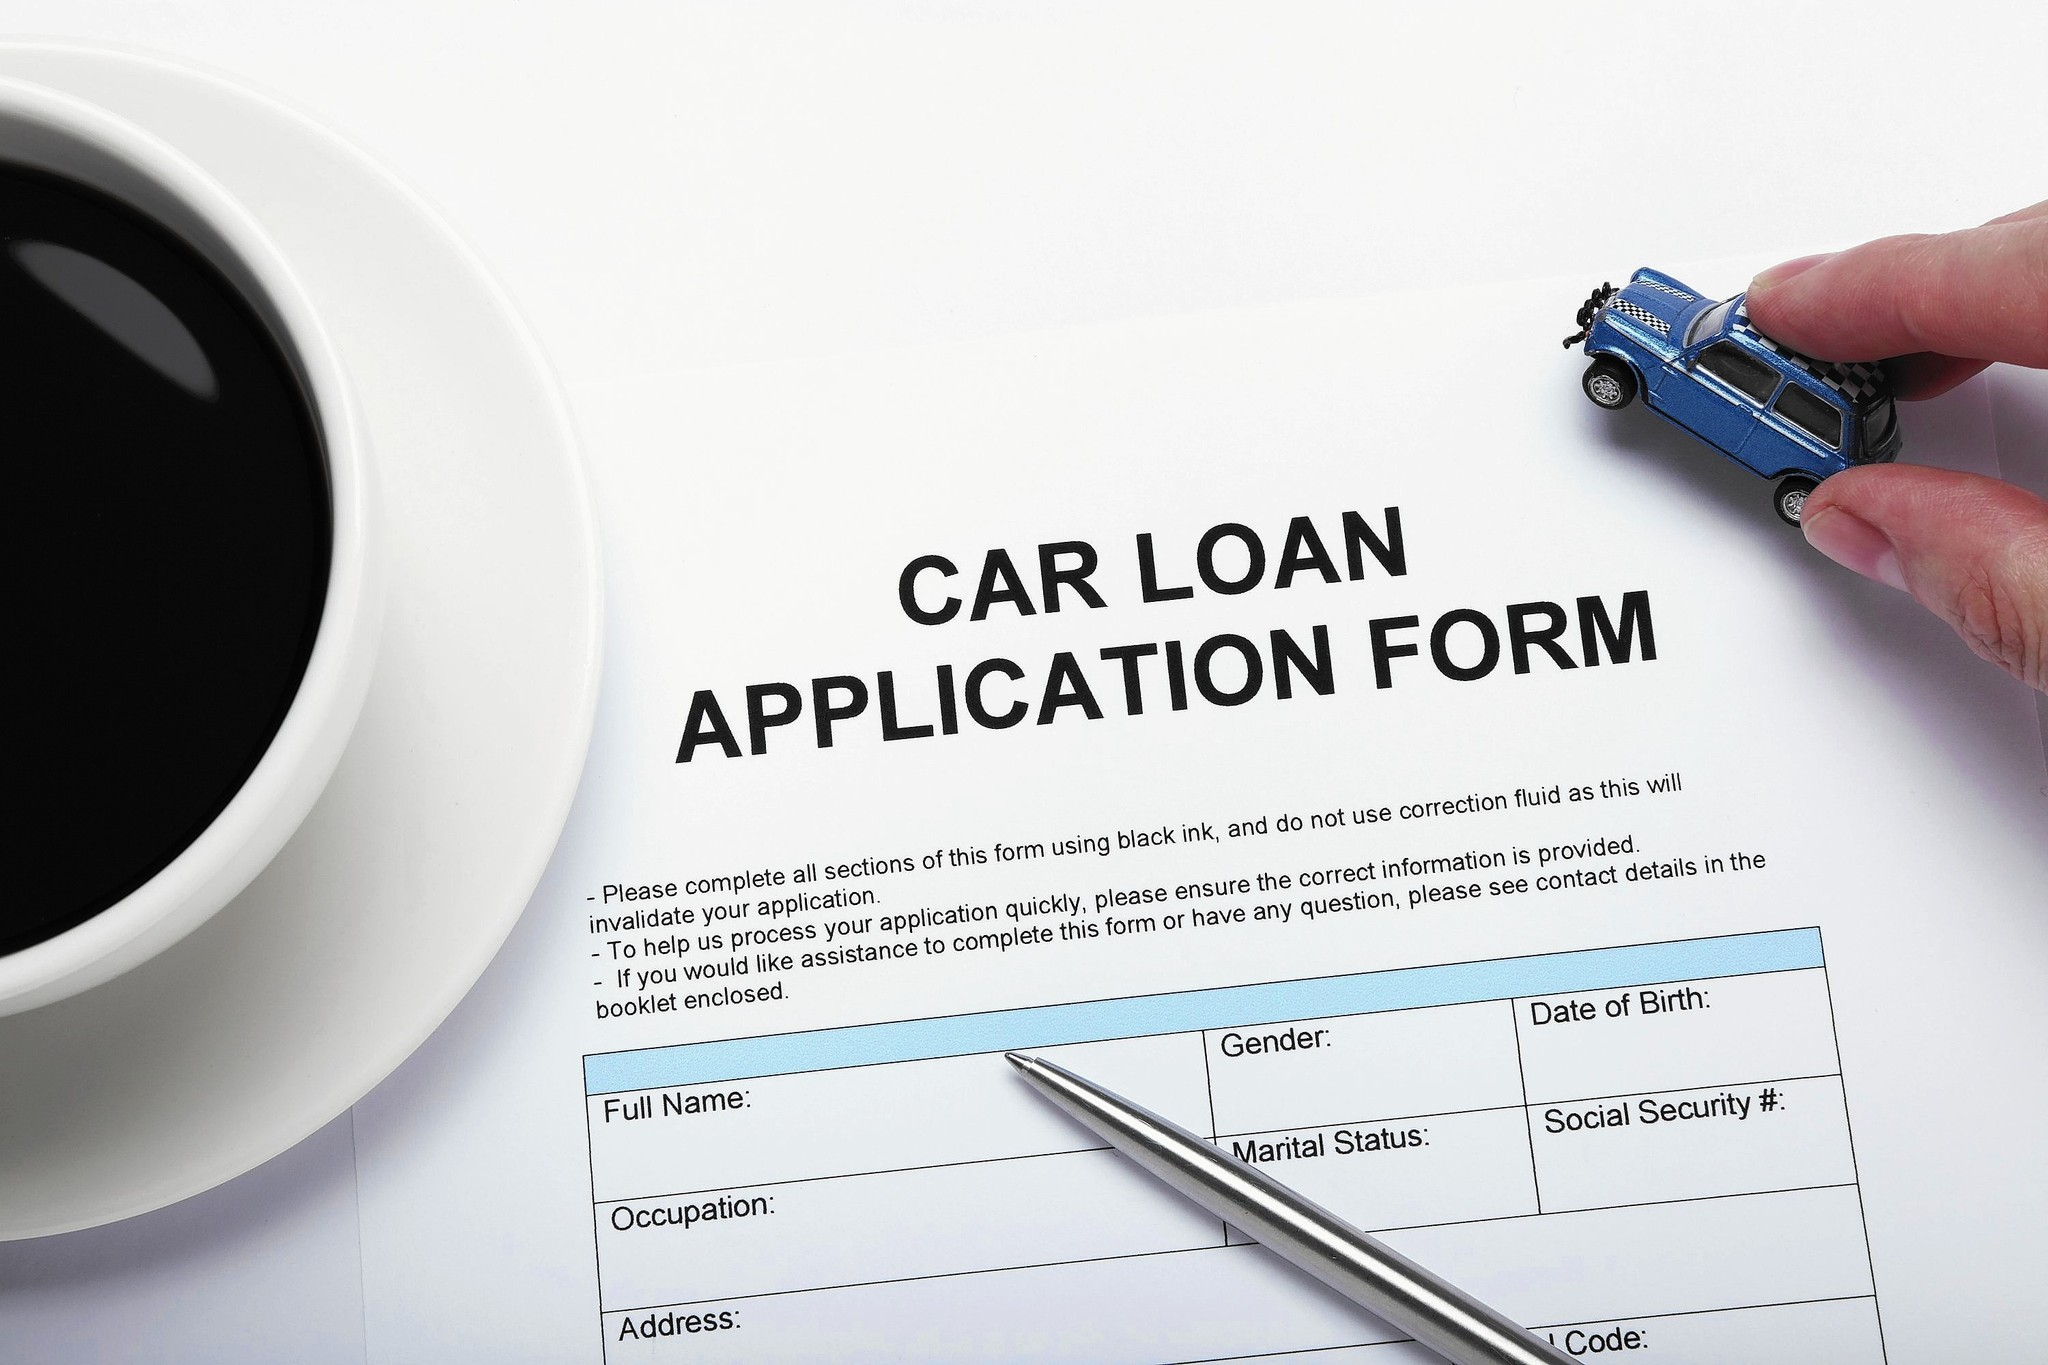 Need a car loan? Be aware of subprime lending